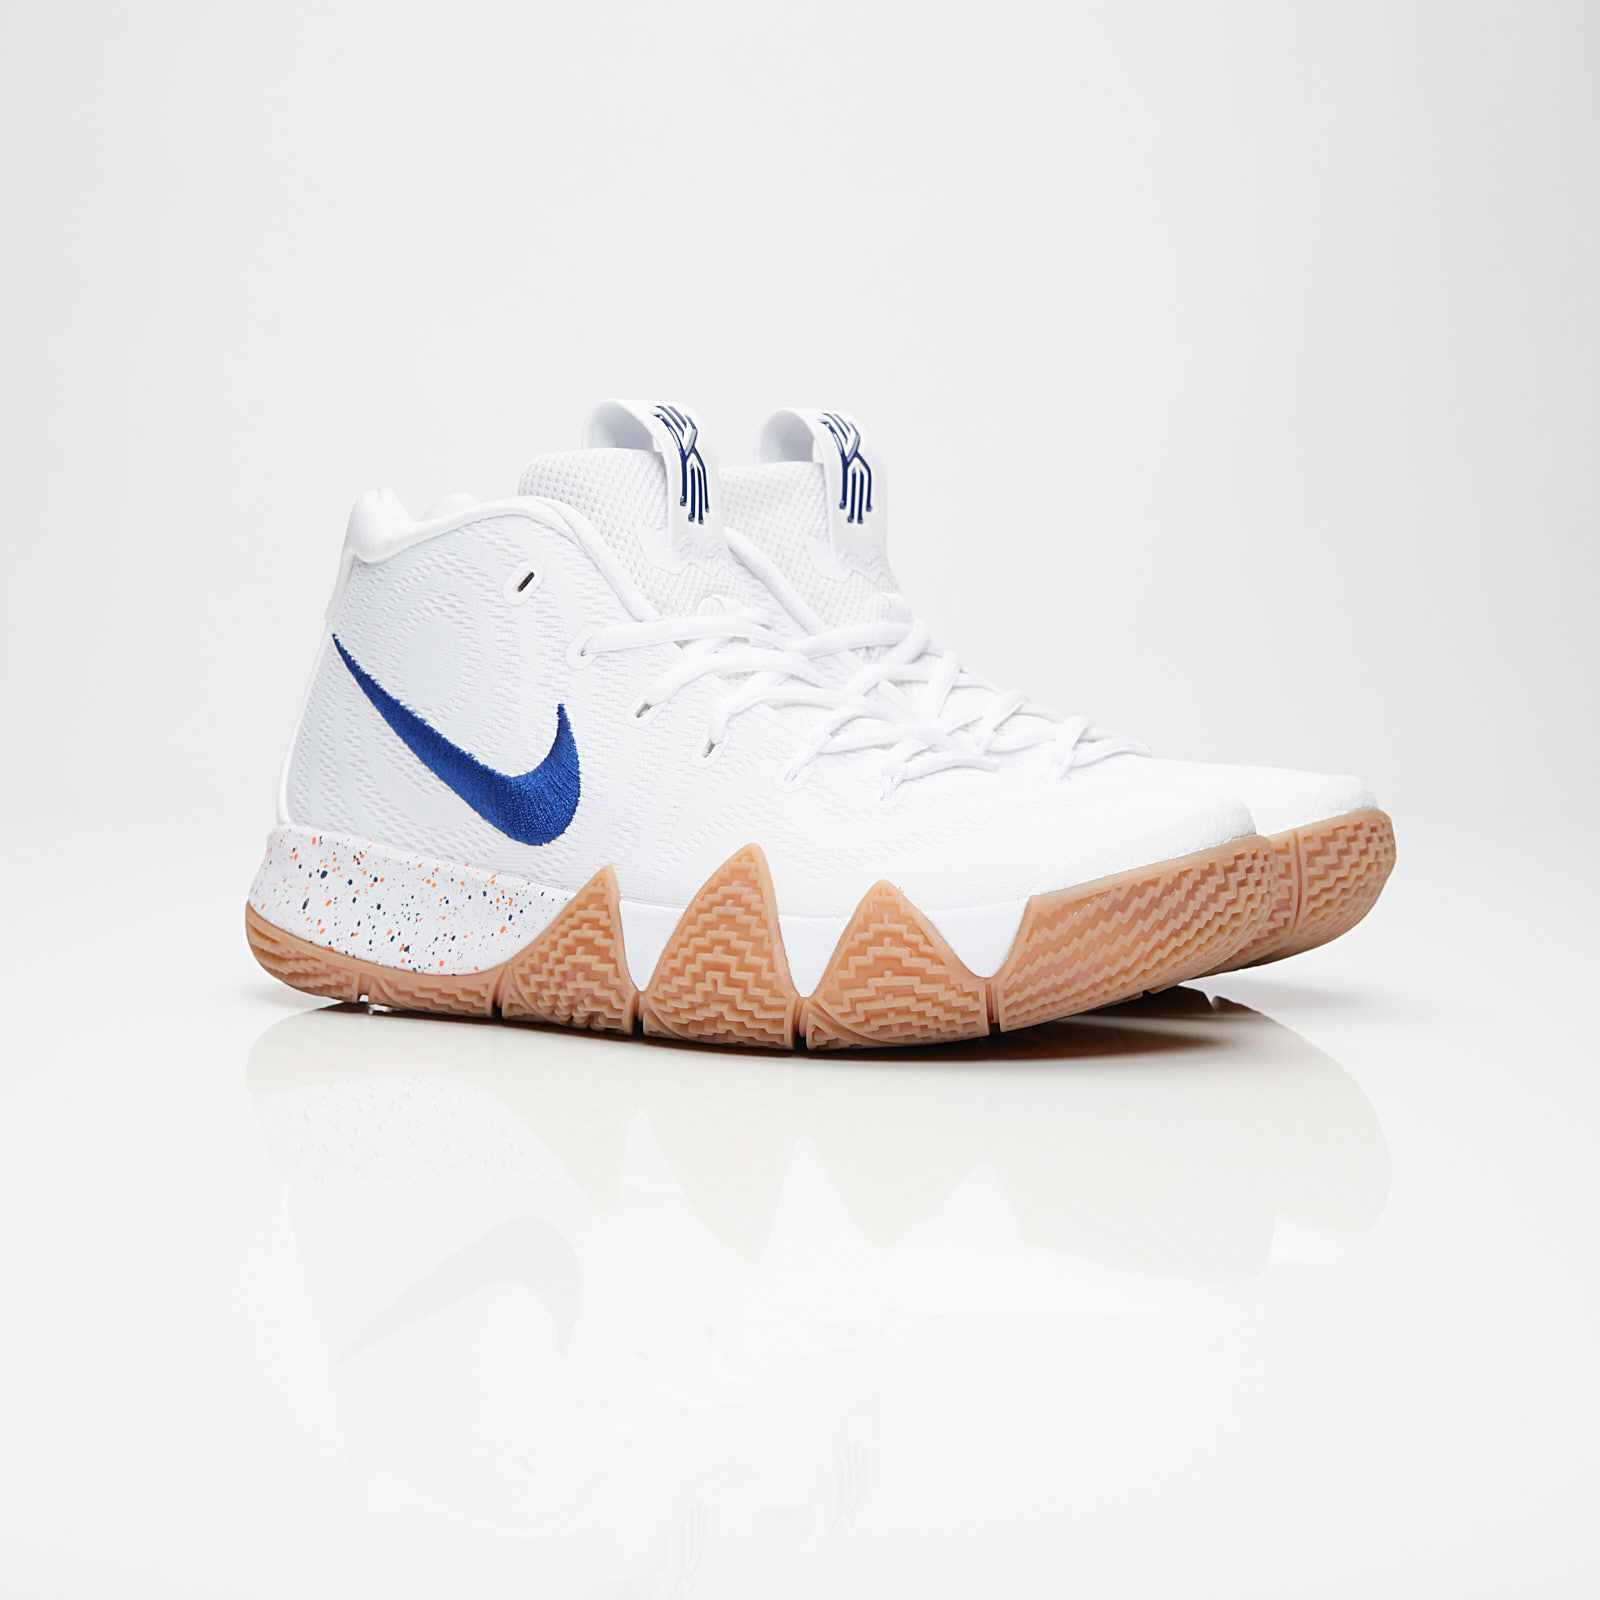 dcca71933e2bfe Nike Kyrie 4 - 943806-100 - Sneakersnstuff